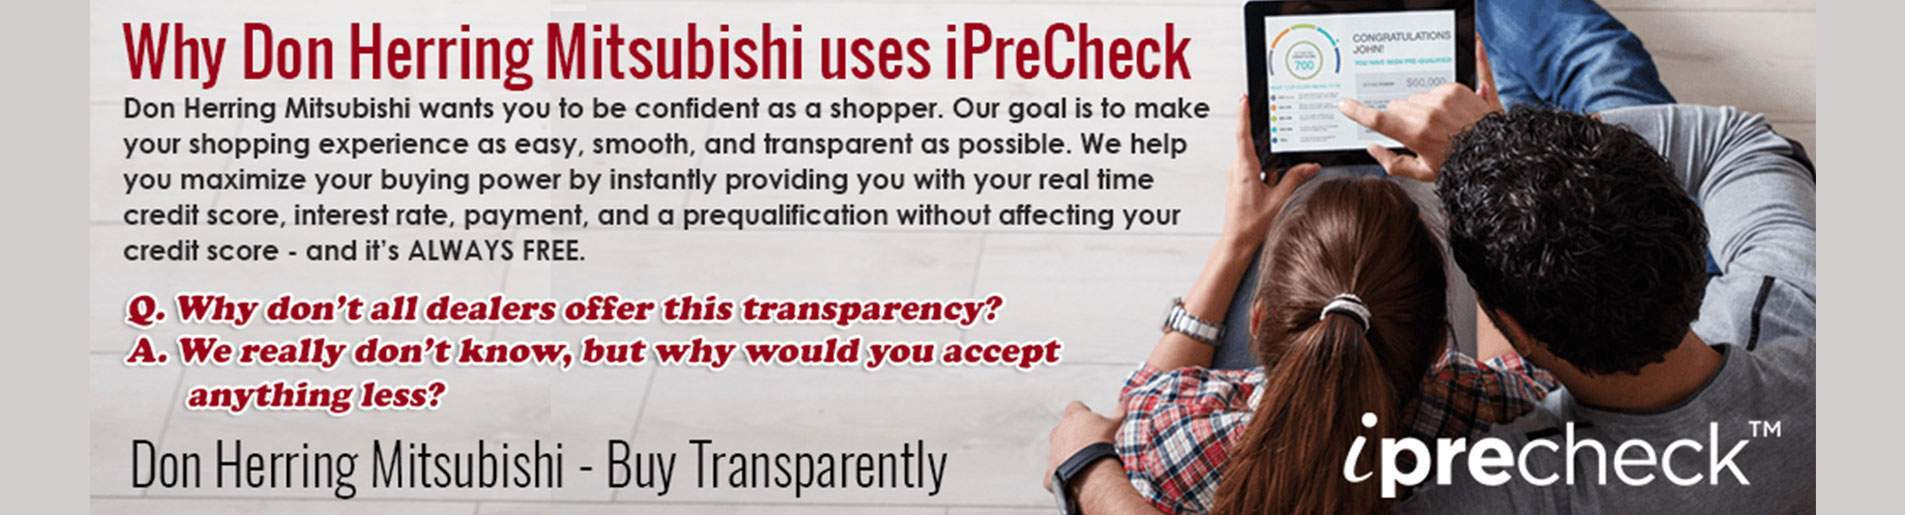 Why Don Herring Uses iPrecheck